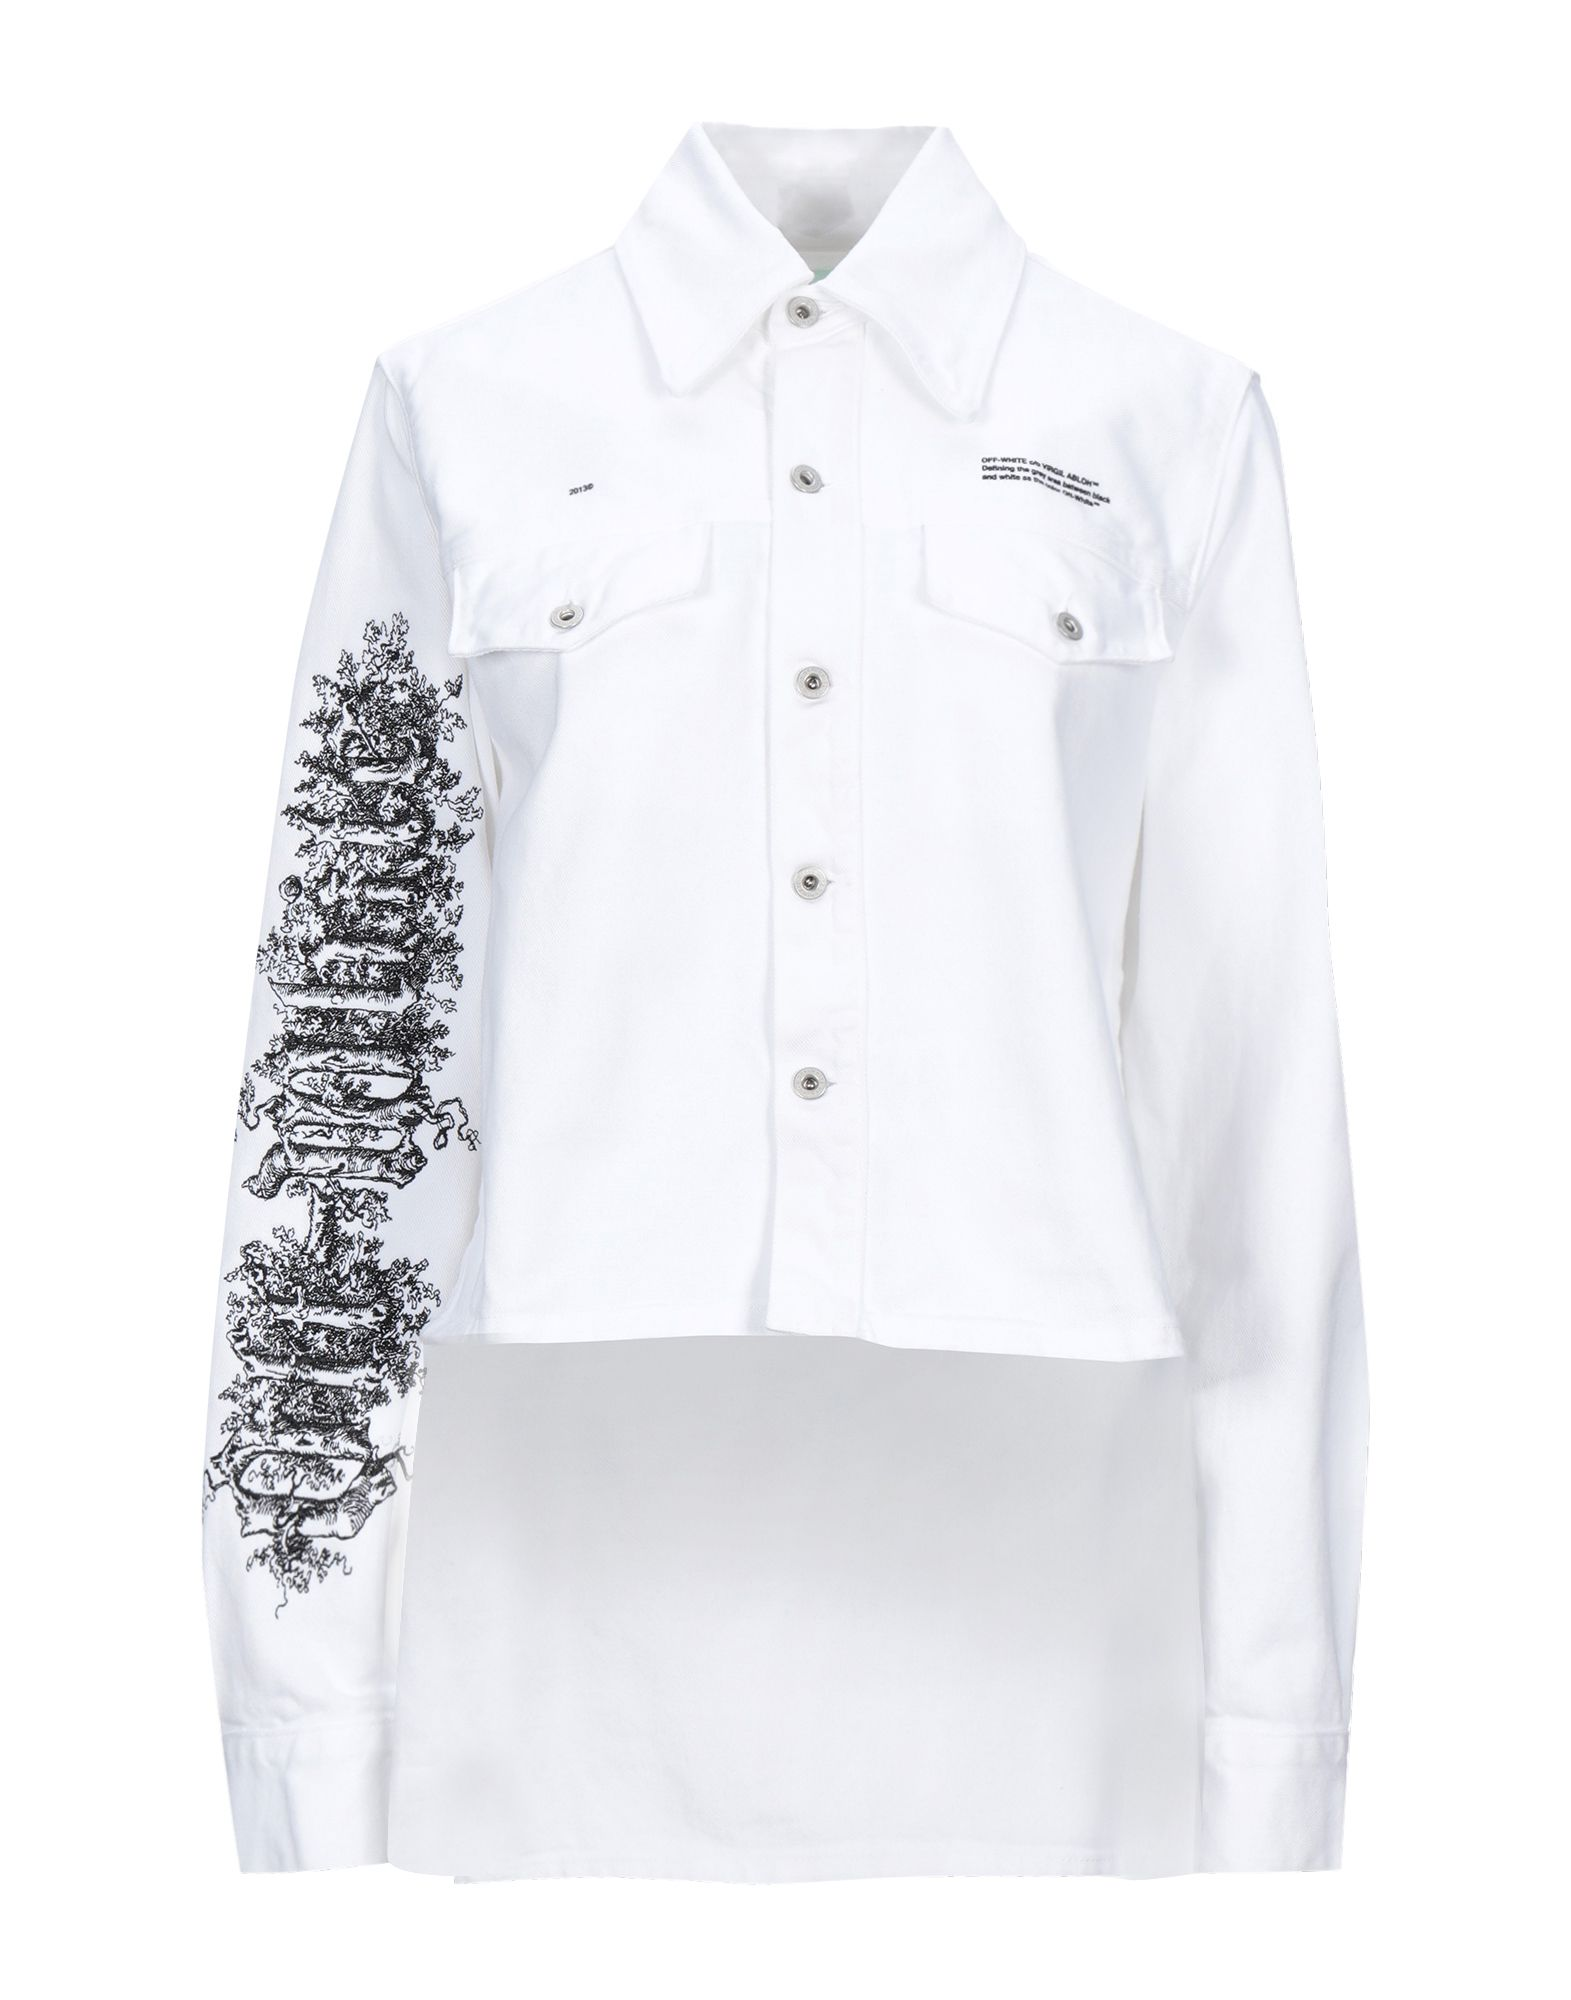 OFF-WHITE™ Denim outerwear. denim, embroidered detailing, logo, solid color, colored wash, long sleeves, classic neckline, single-breasted, multipockets. 100% Cotton